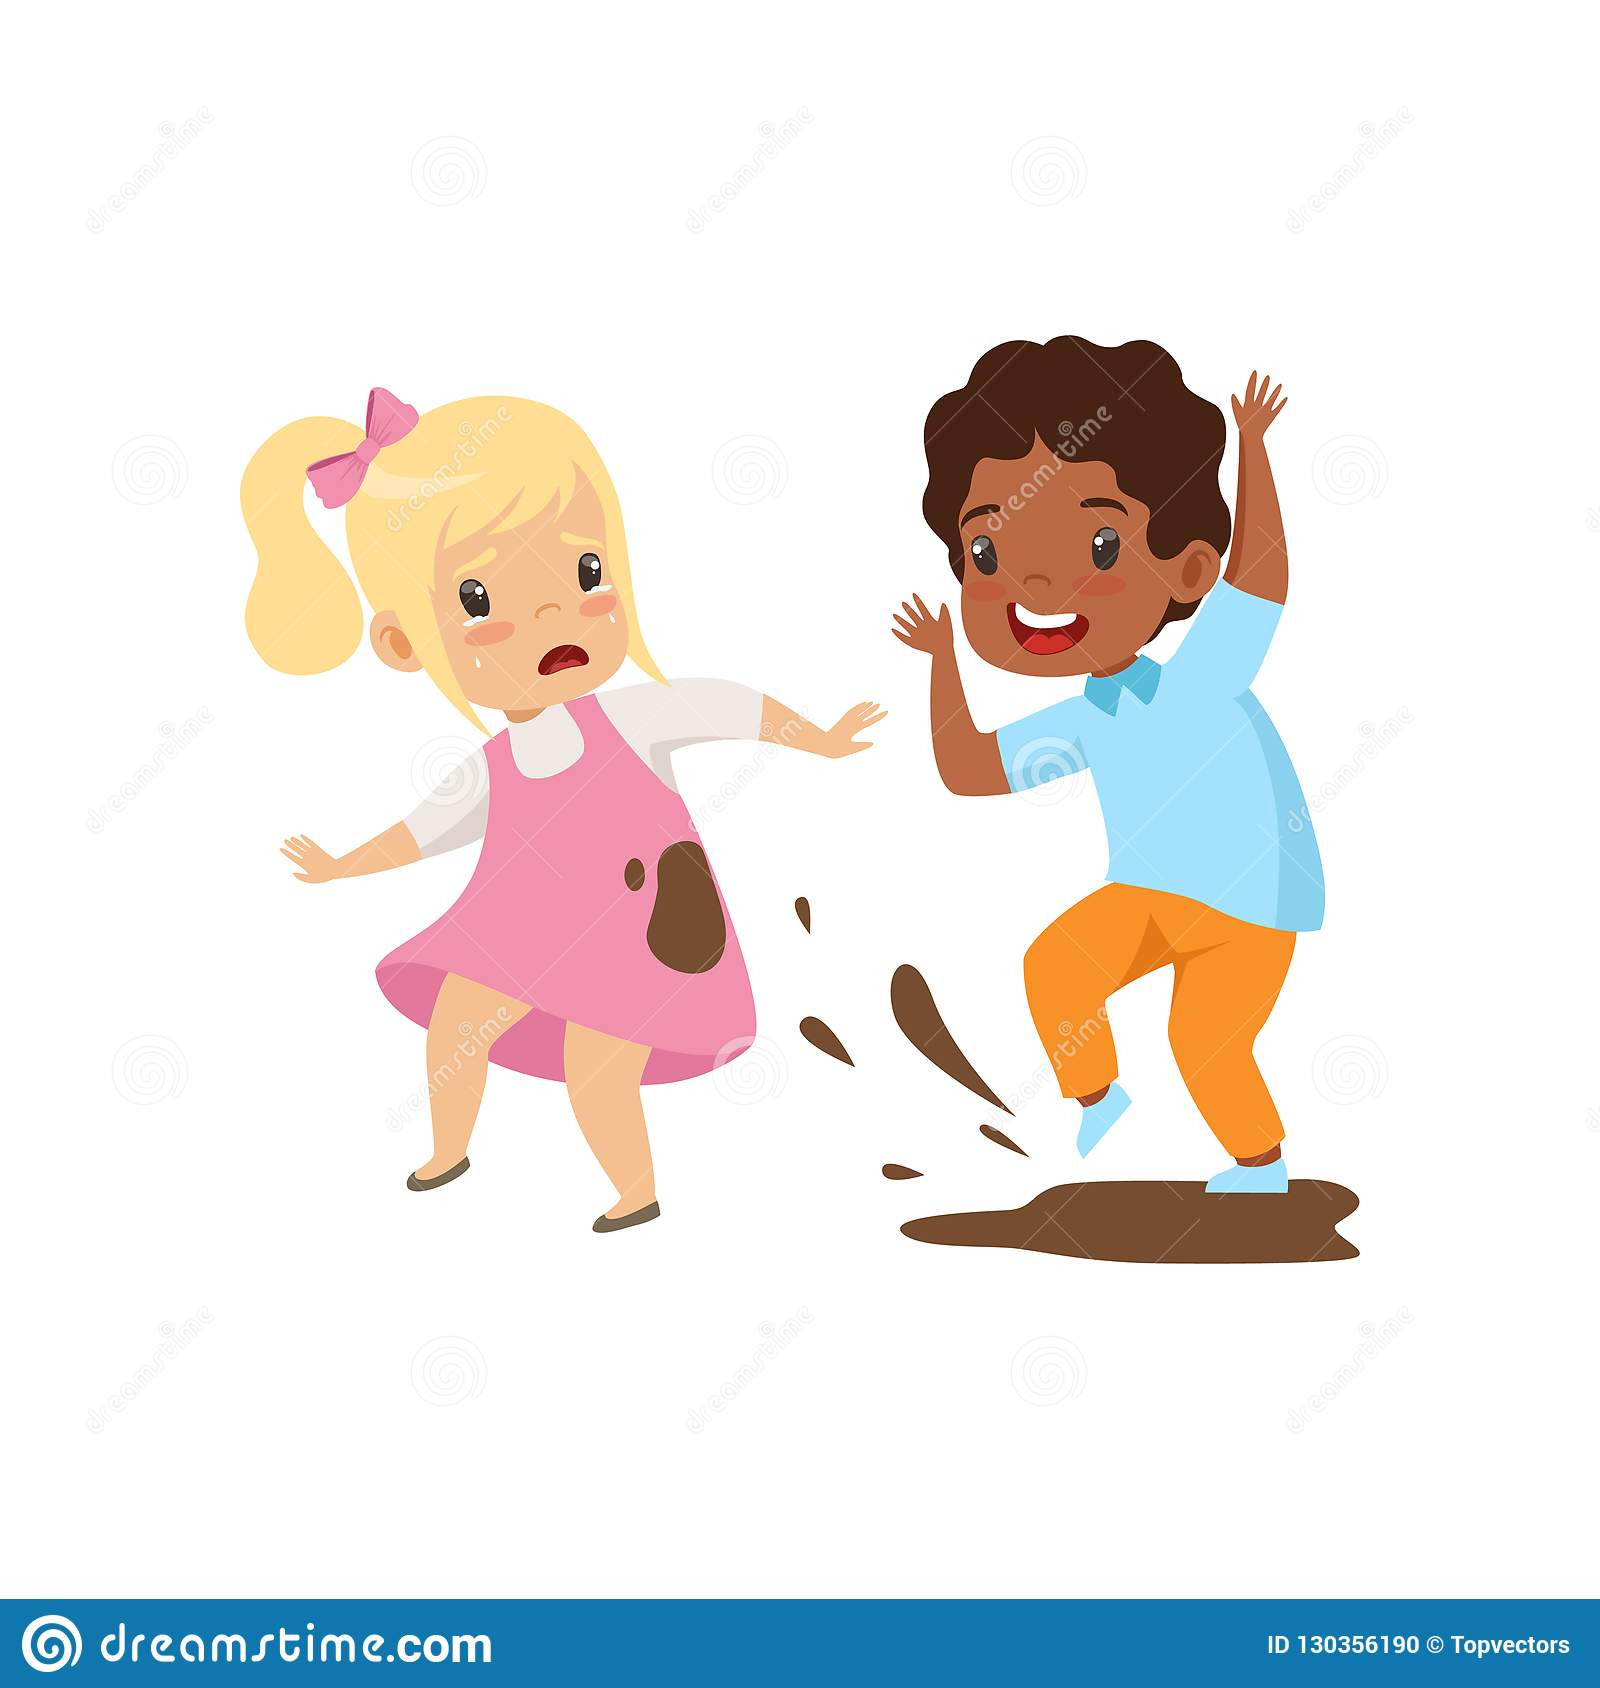 Boy Dirtying The Girl With Dirt Bad Behavior Conflict